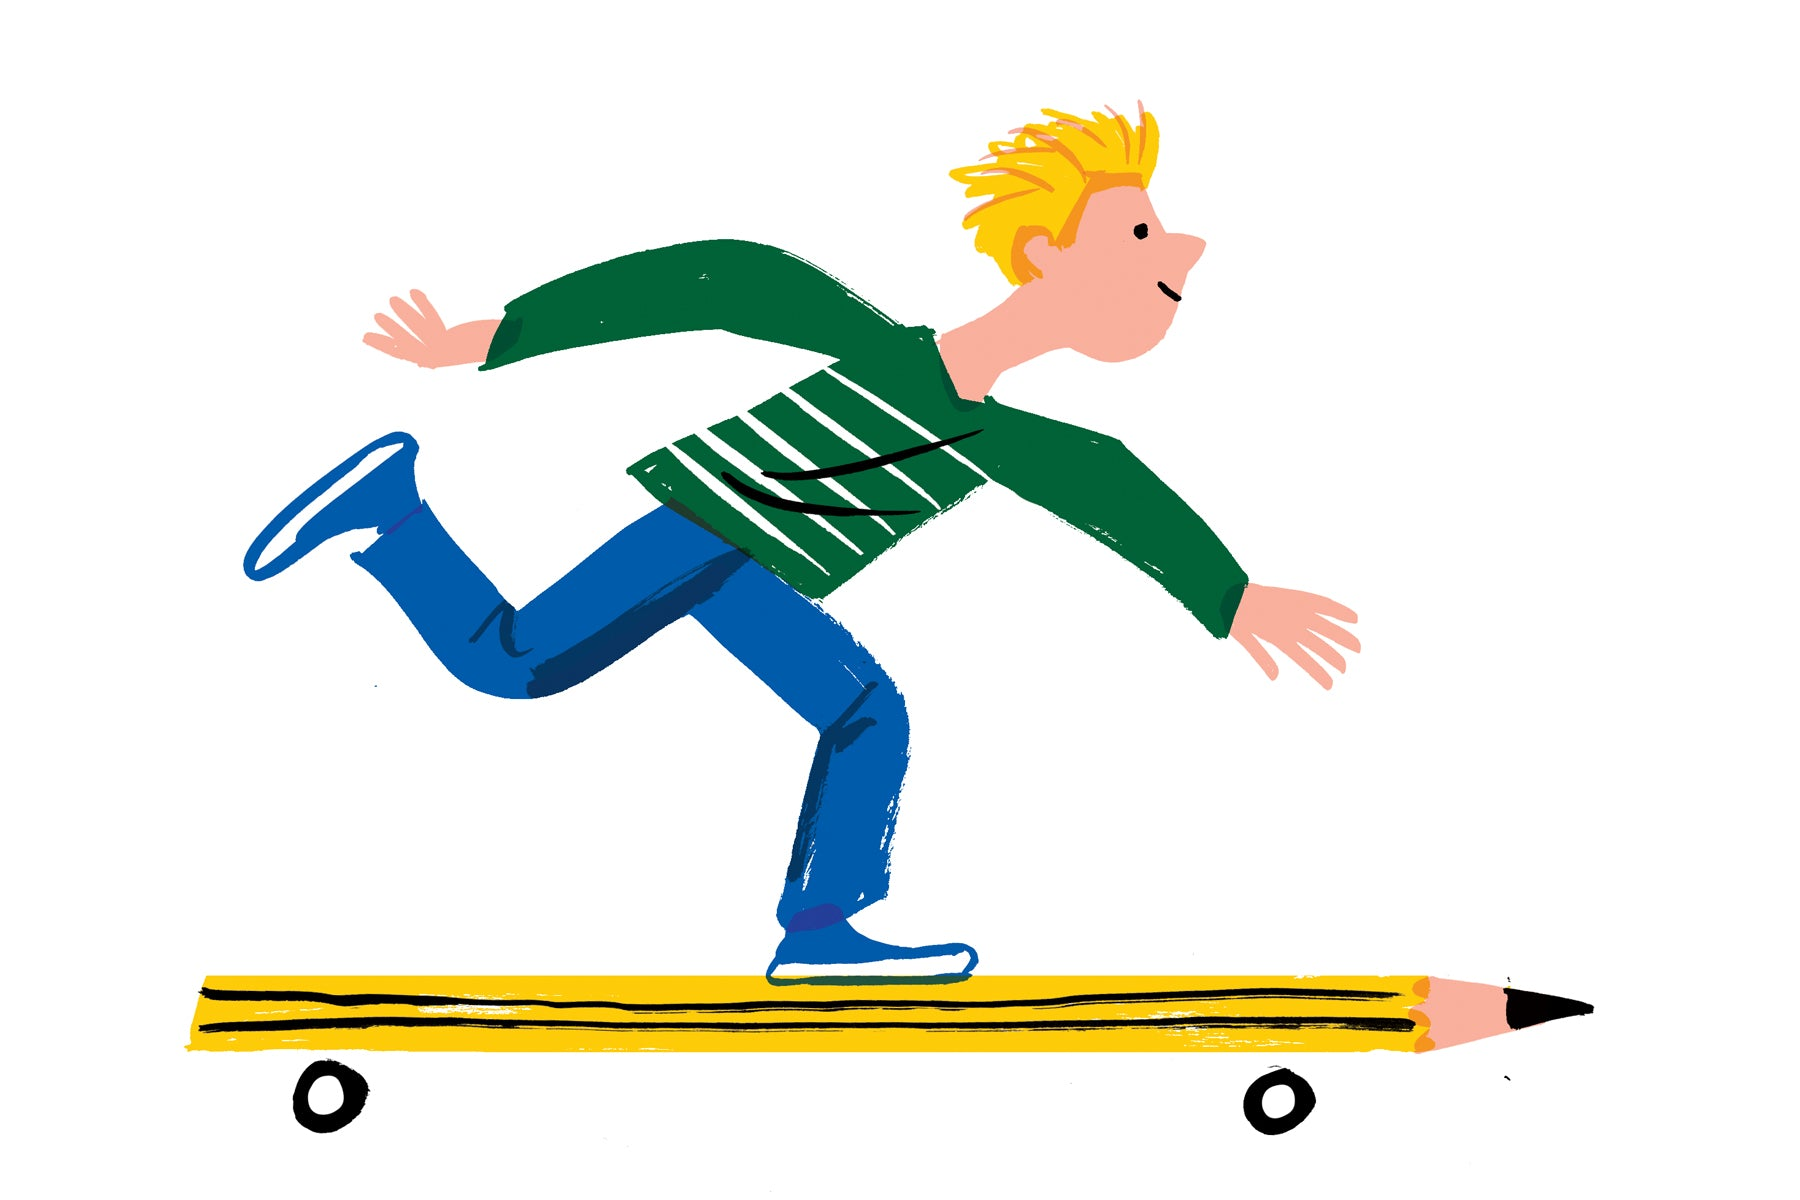 Illustration of a young blonde boy riding a skateboard but the skateboard is actually a pencil. This is a metaphor for how I got started.